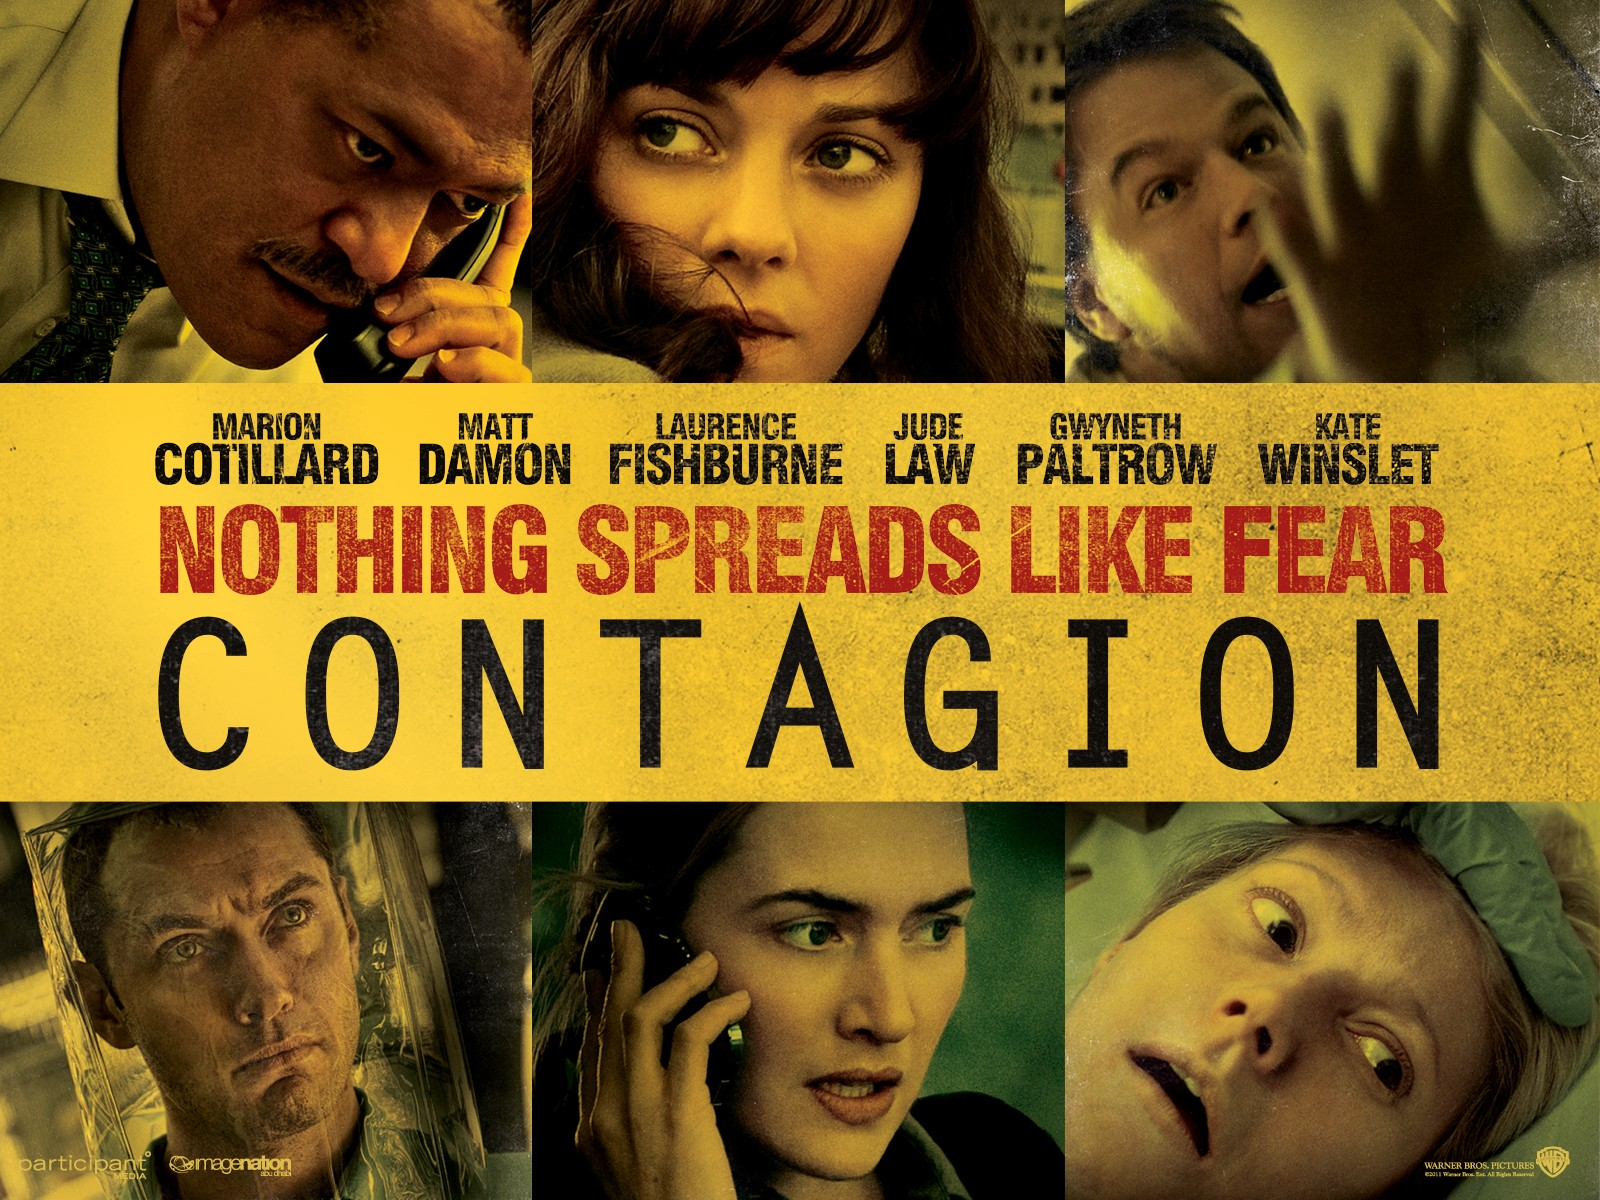 a review of the movie contagion a thriller by steven sodebergh In contagion, director steven soderbergh takes movie goers on a clinical journey through the  action/adventure, thriller  in providing movie reviews on our site, cbncom is not endorsing or recommending films we review.